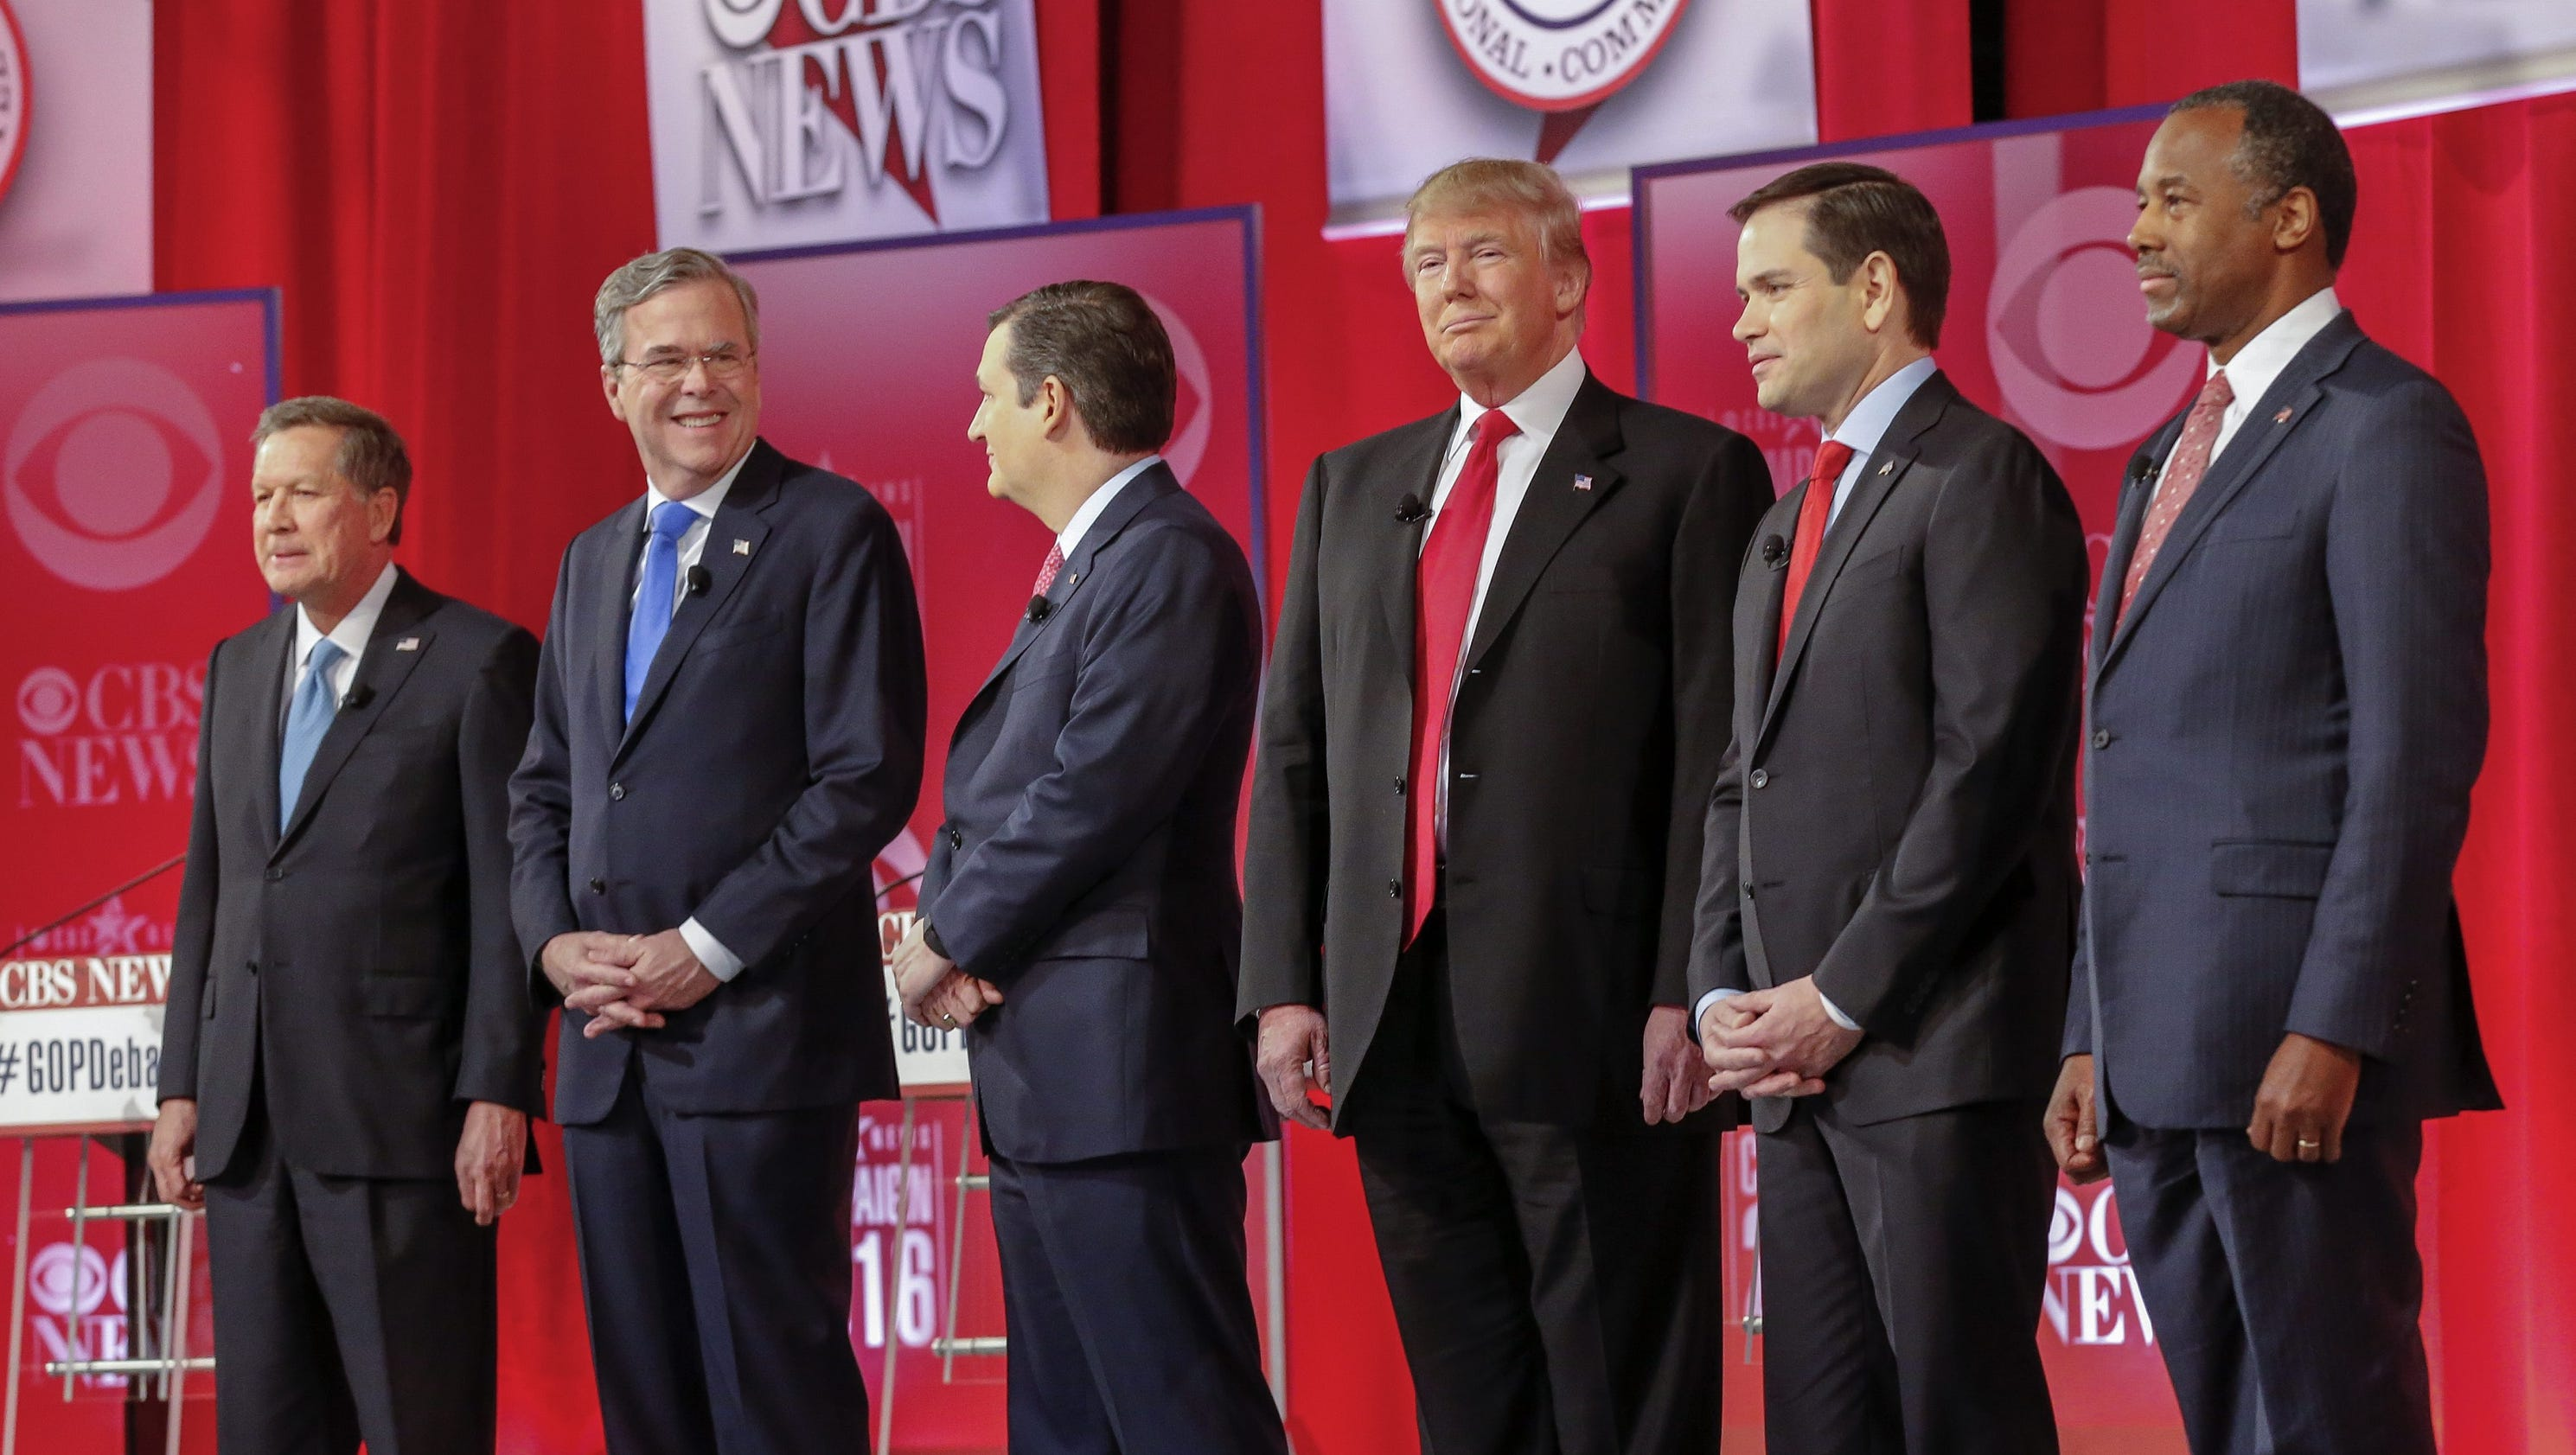 Republican candidates move on from brutal South Carolina ...